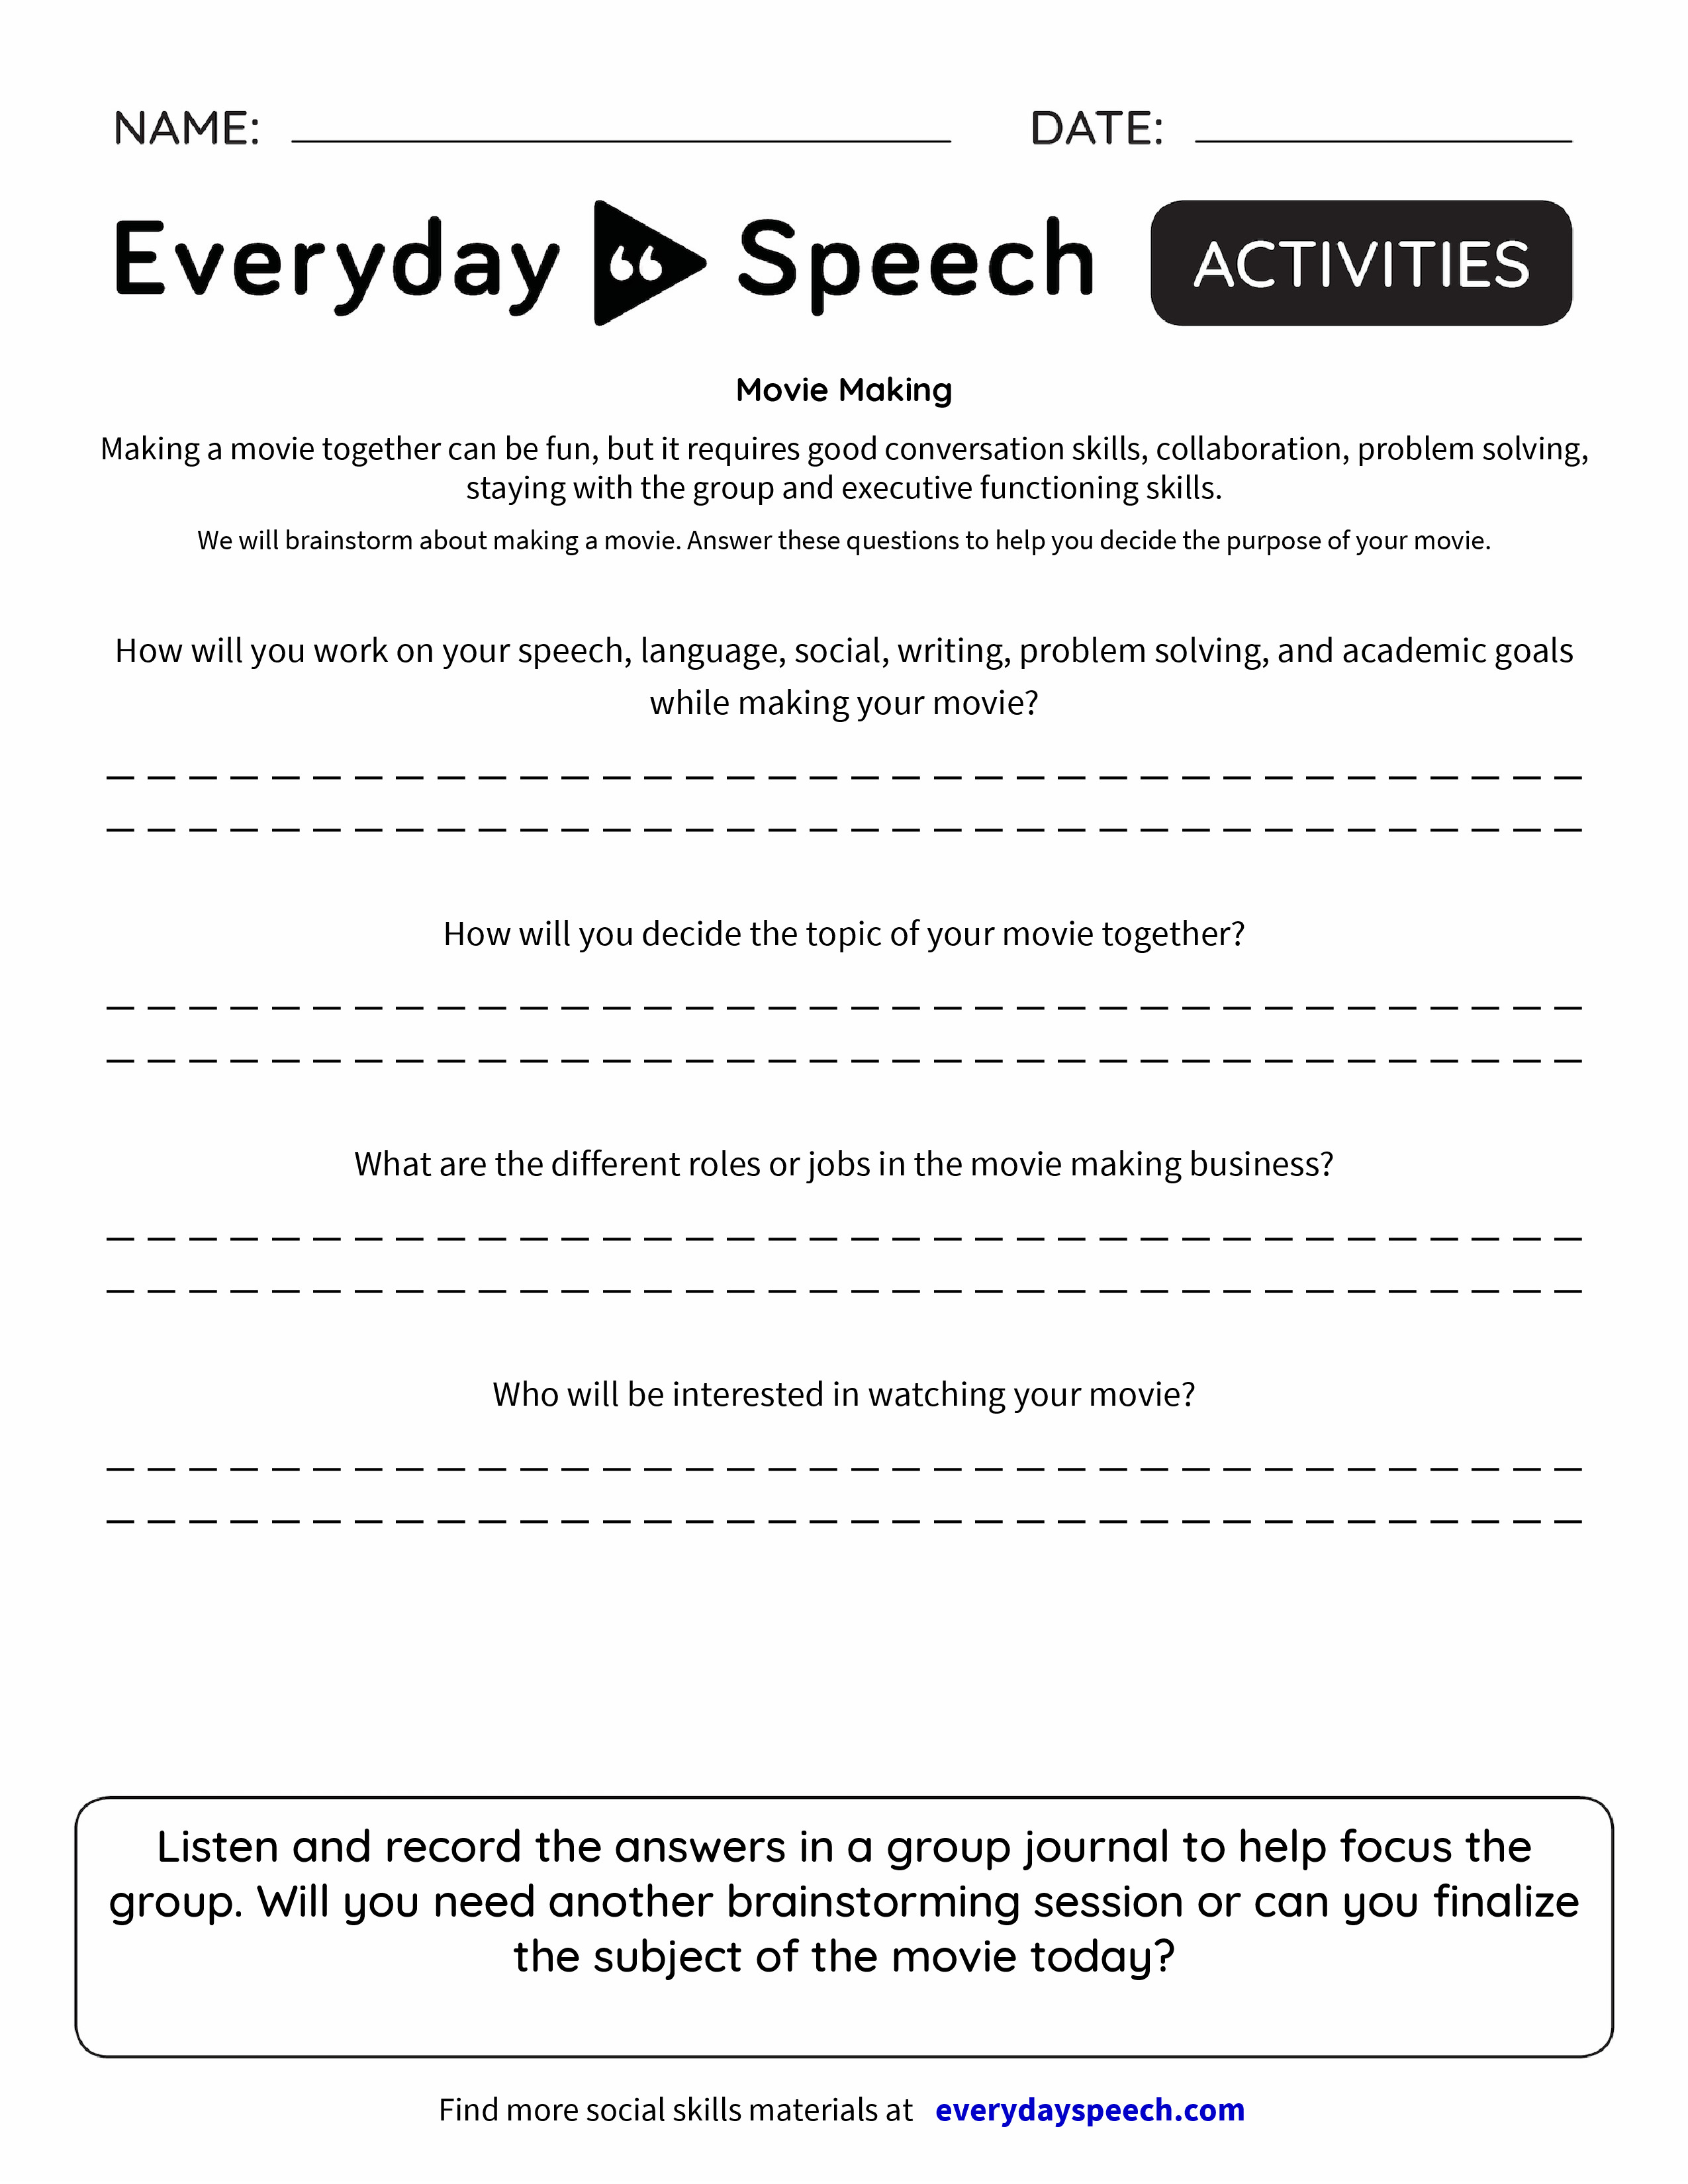 Worksheets Social Problem Solving Worksheets movie making everyday speech preview